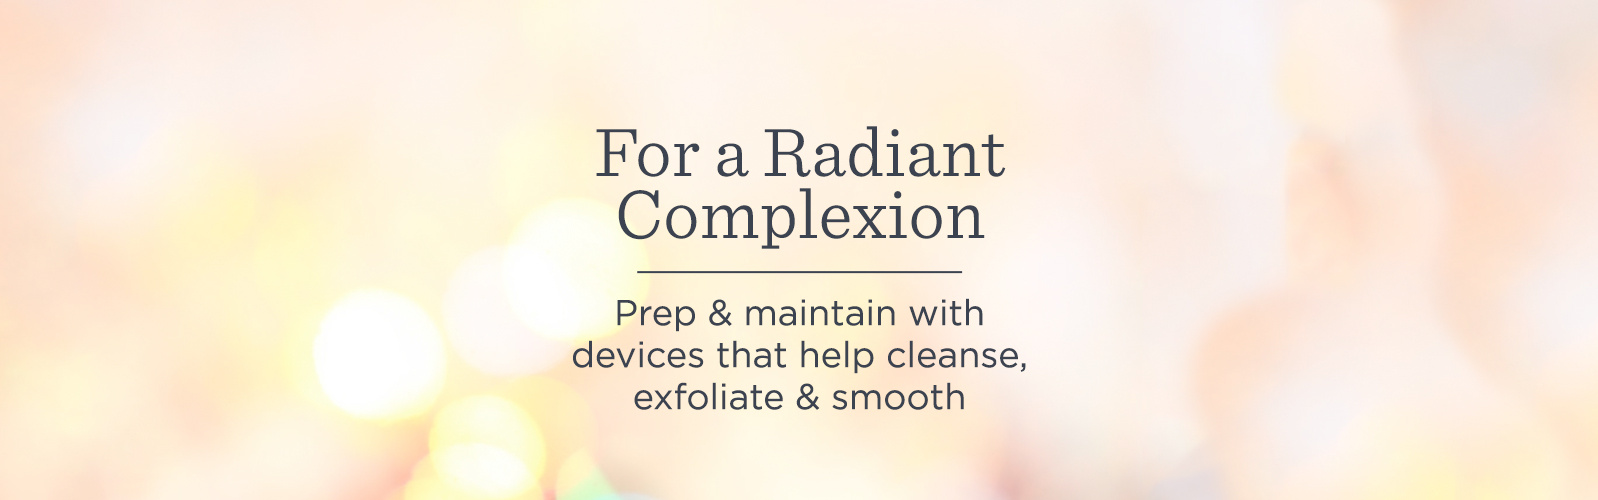 For a Radiant Complexion. Prep & maintain with devices that help cleanse, exfoliate & smooth